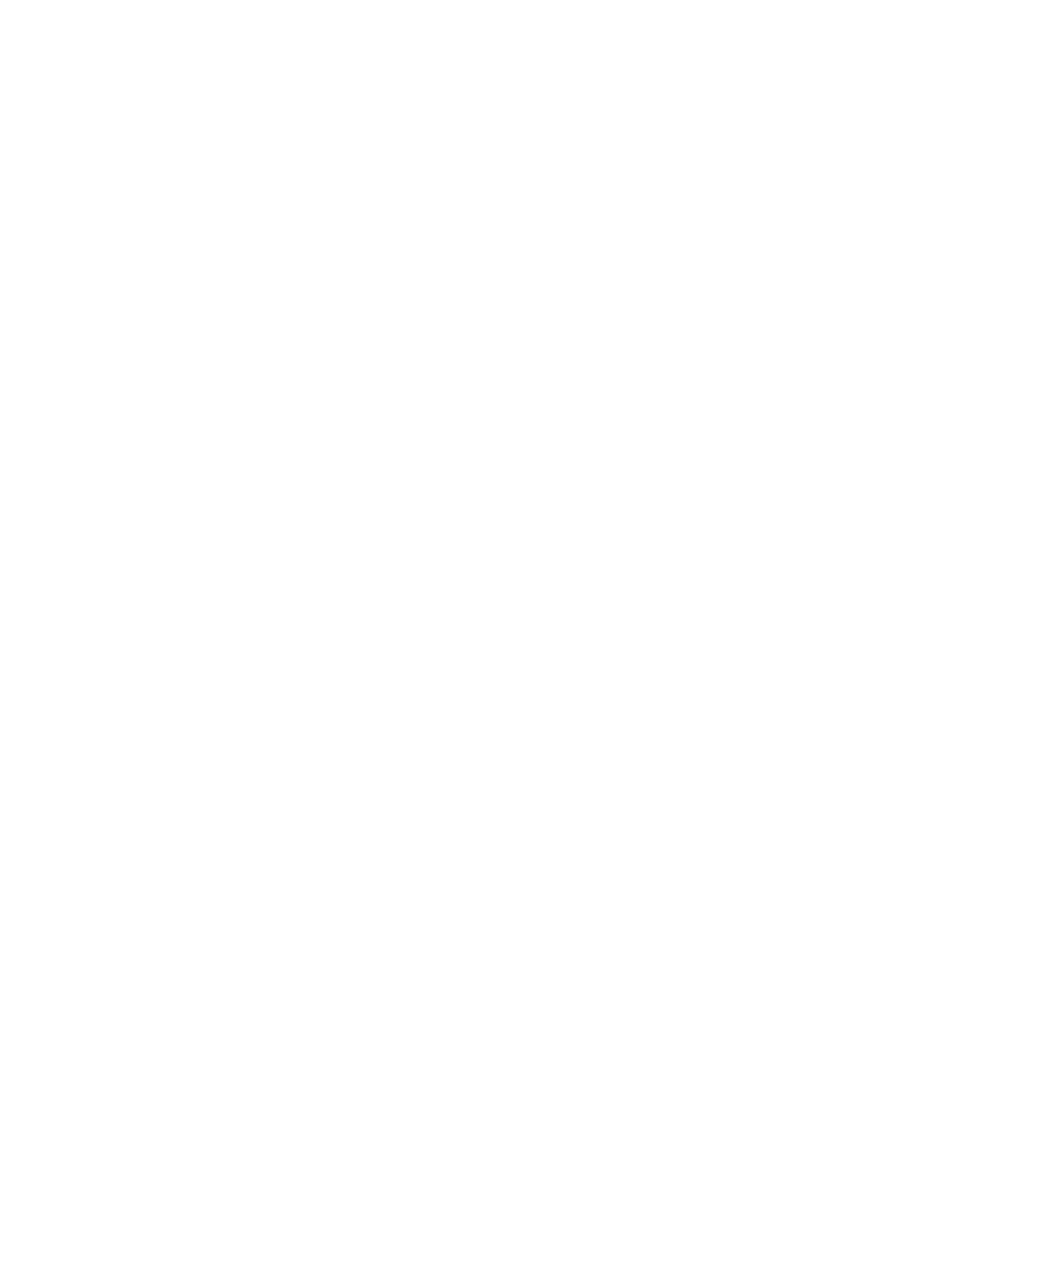 ARS MAGISTRIS GROUP